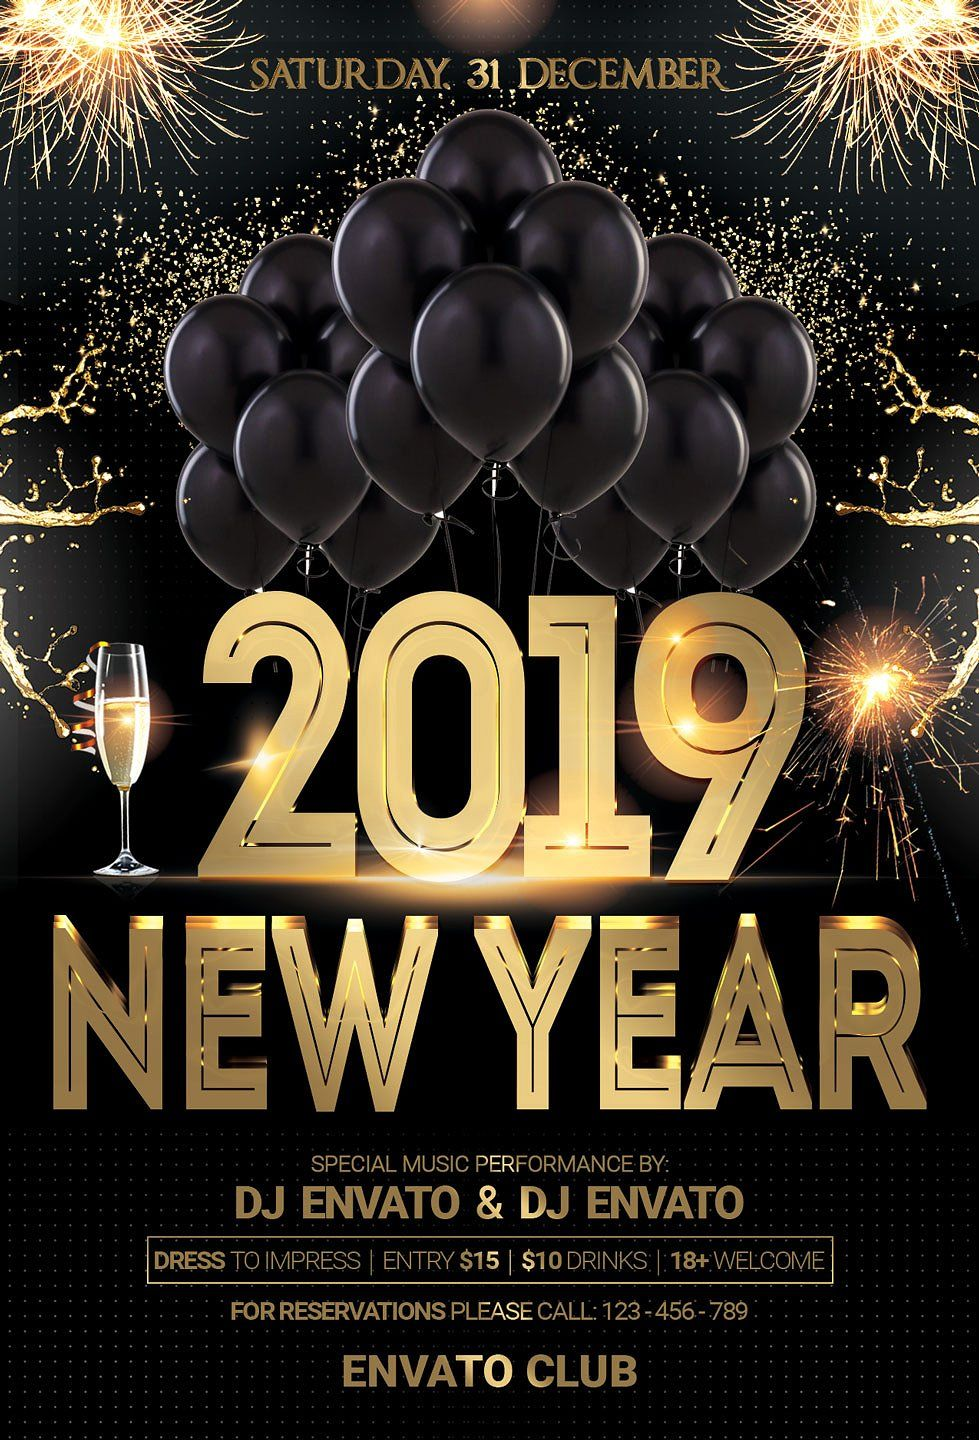 New Year Party Flyer New Year S Eve Flyer Party Flyer New Years Party